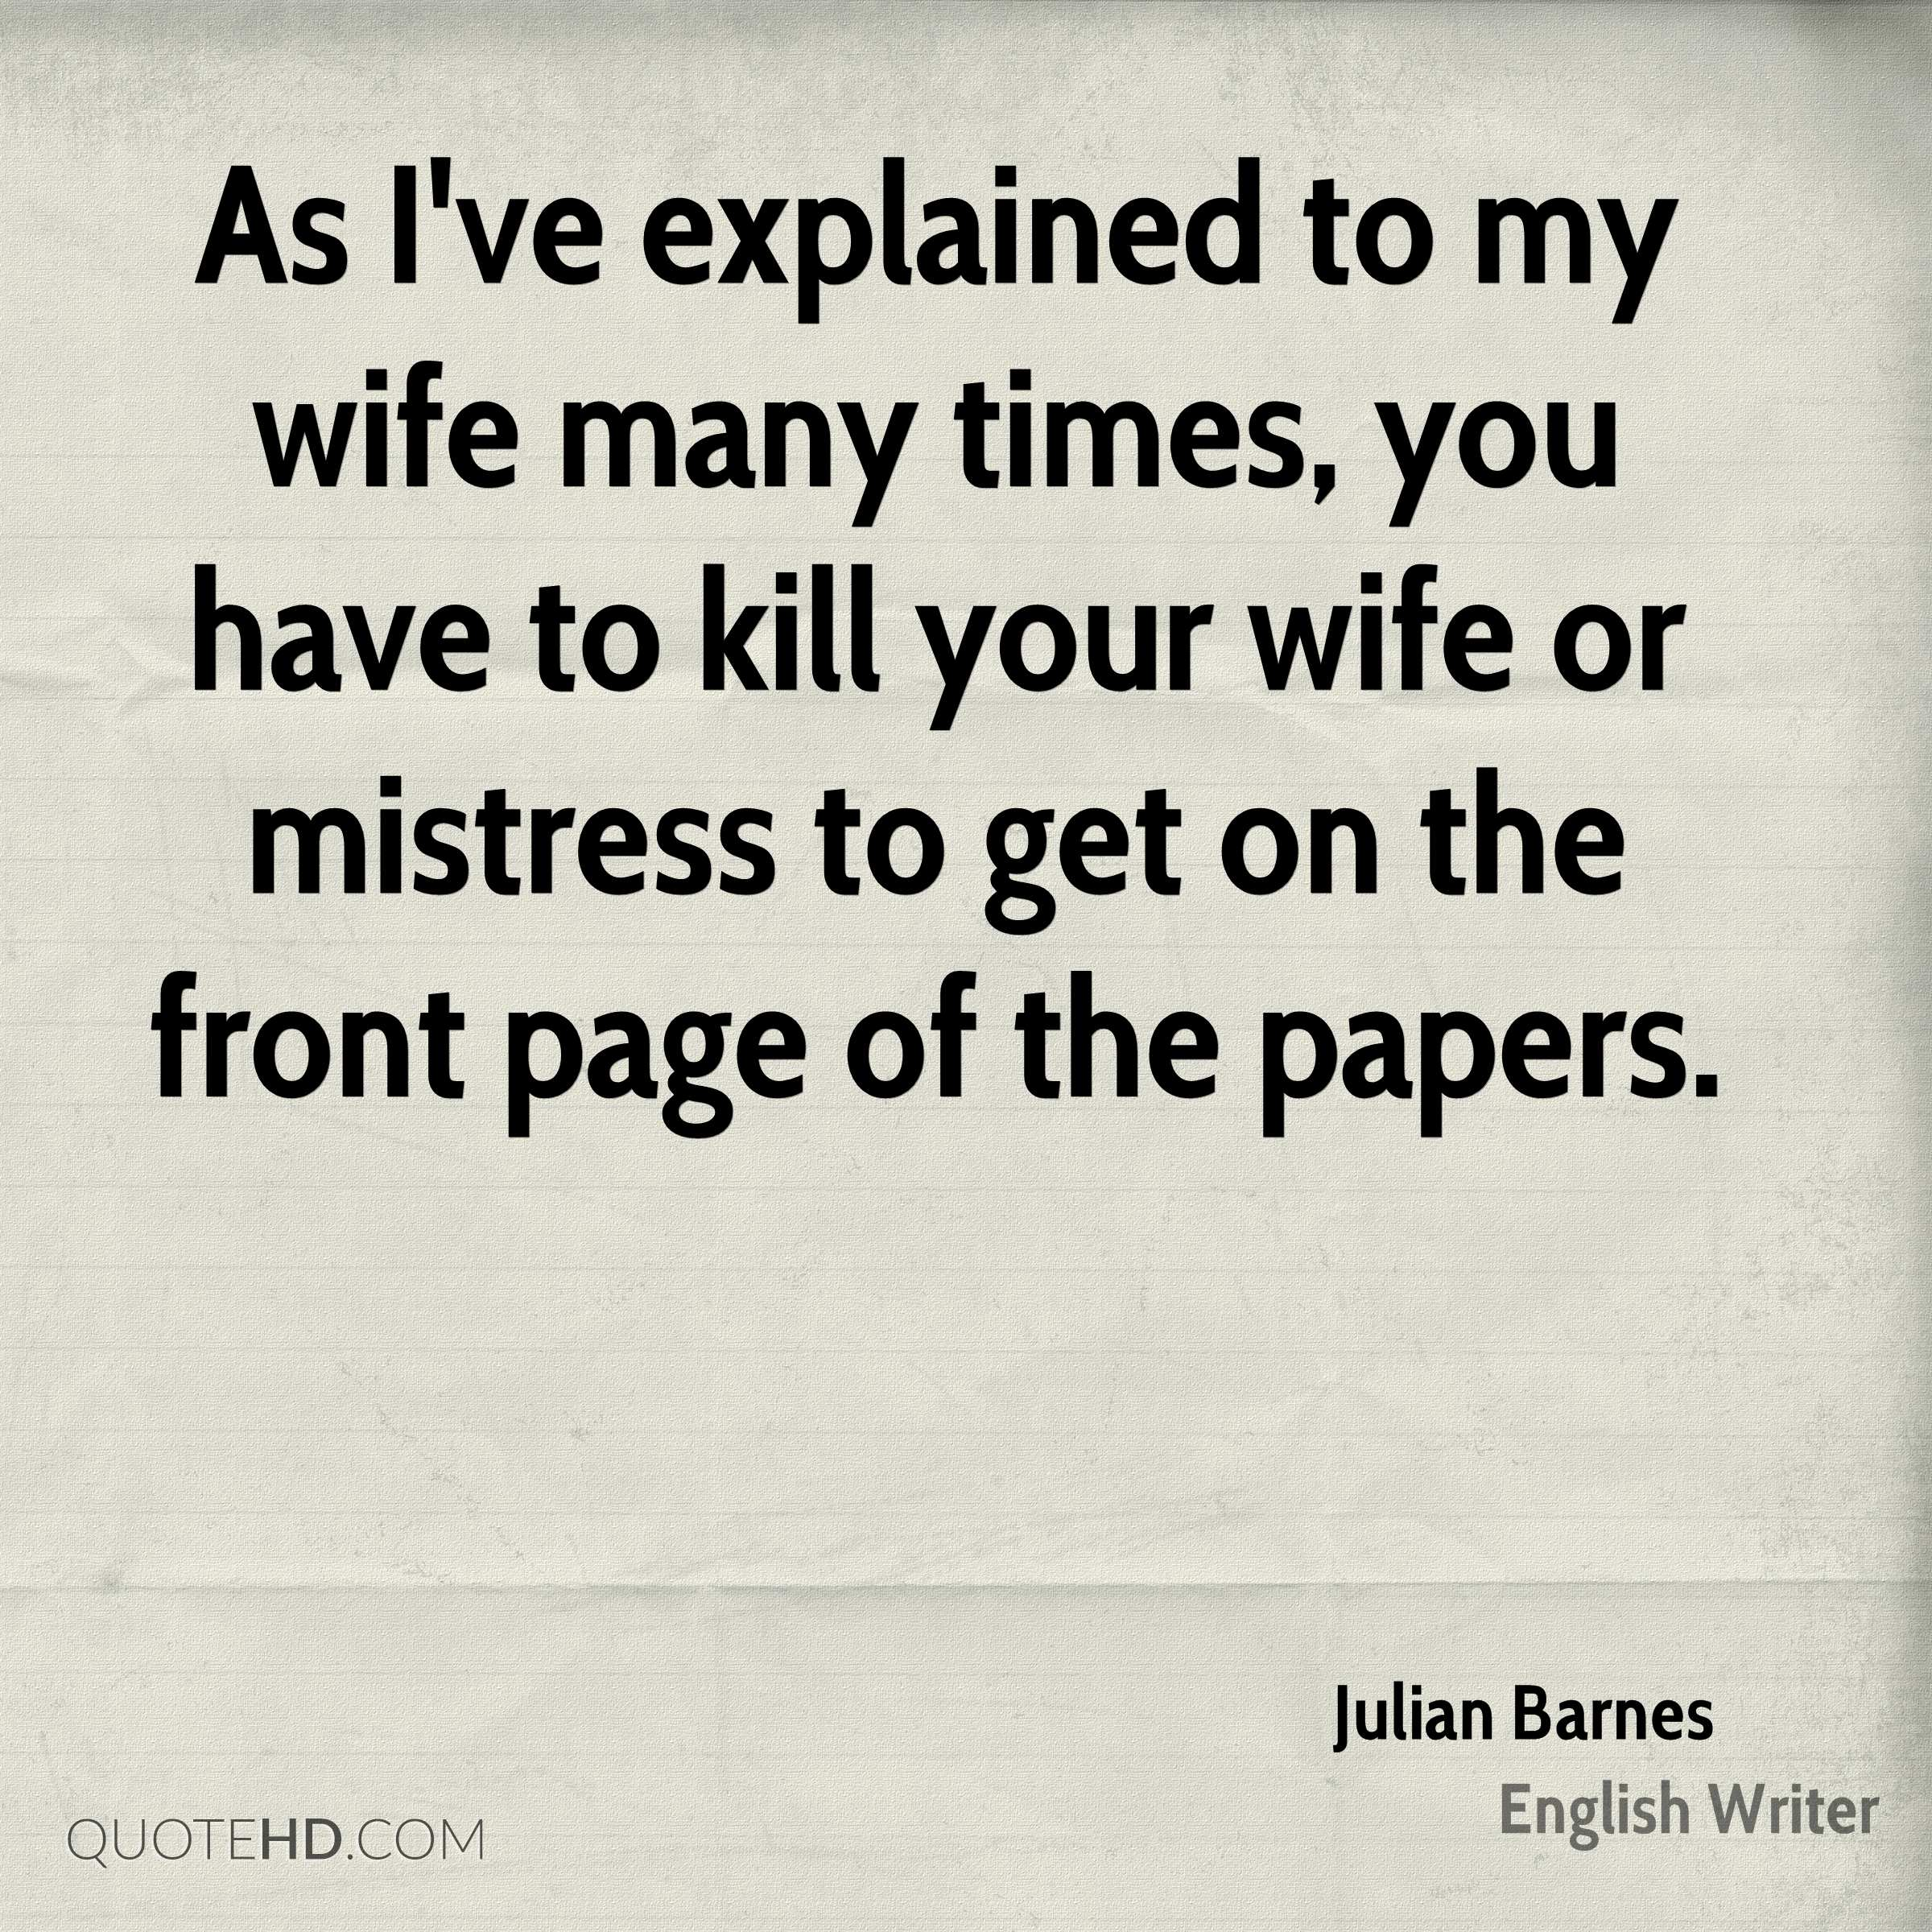 As I've explained to my wife many times, you have to kill your wife or mistress to get on the front page of the papers.